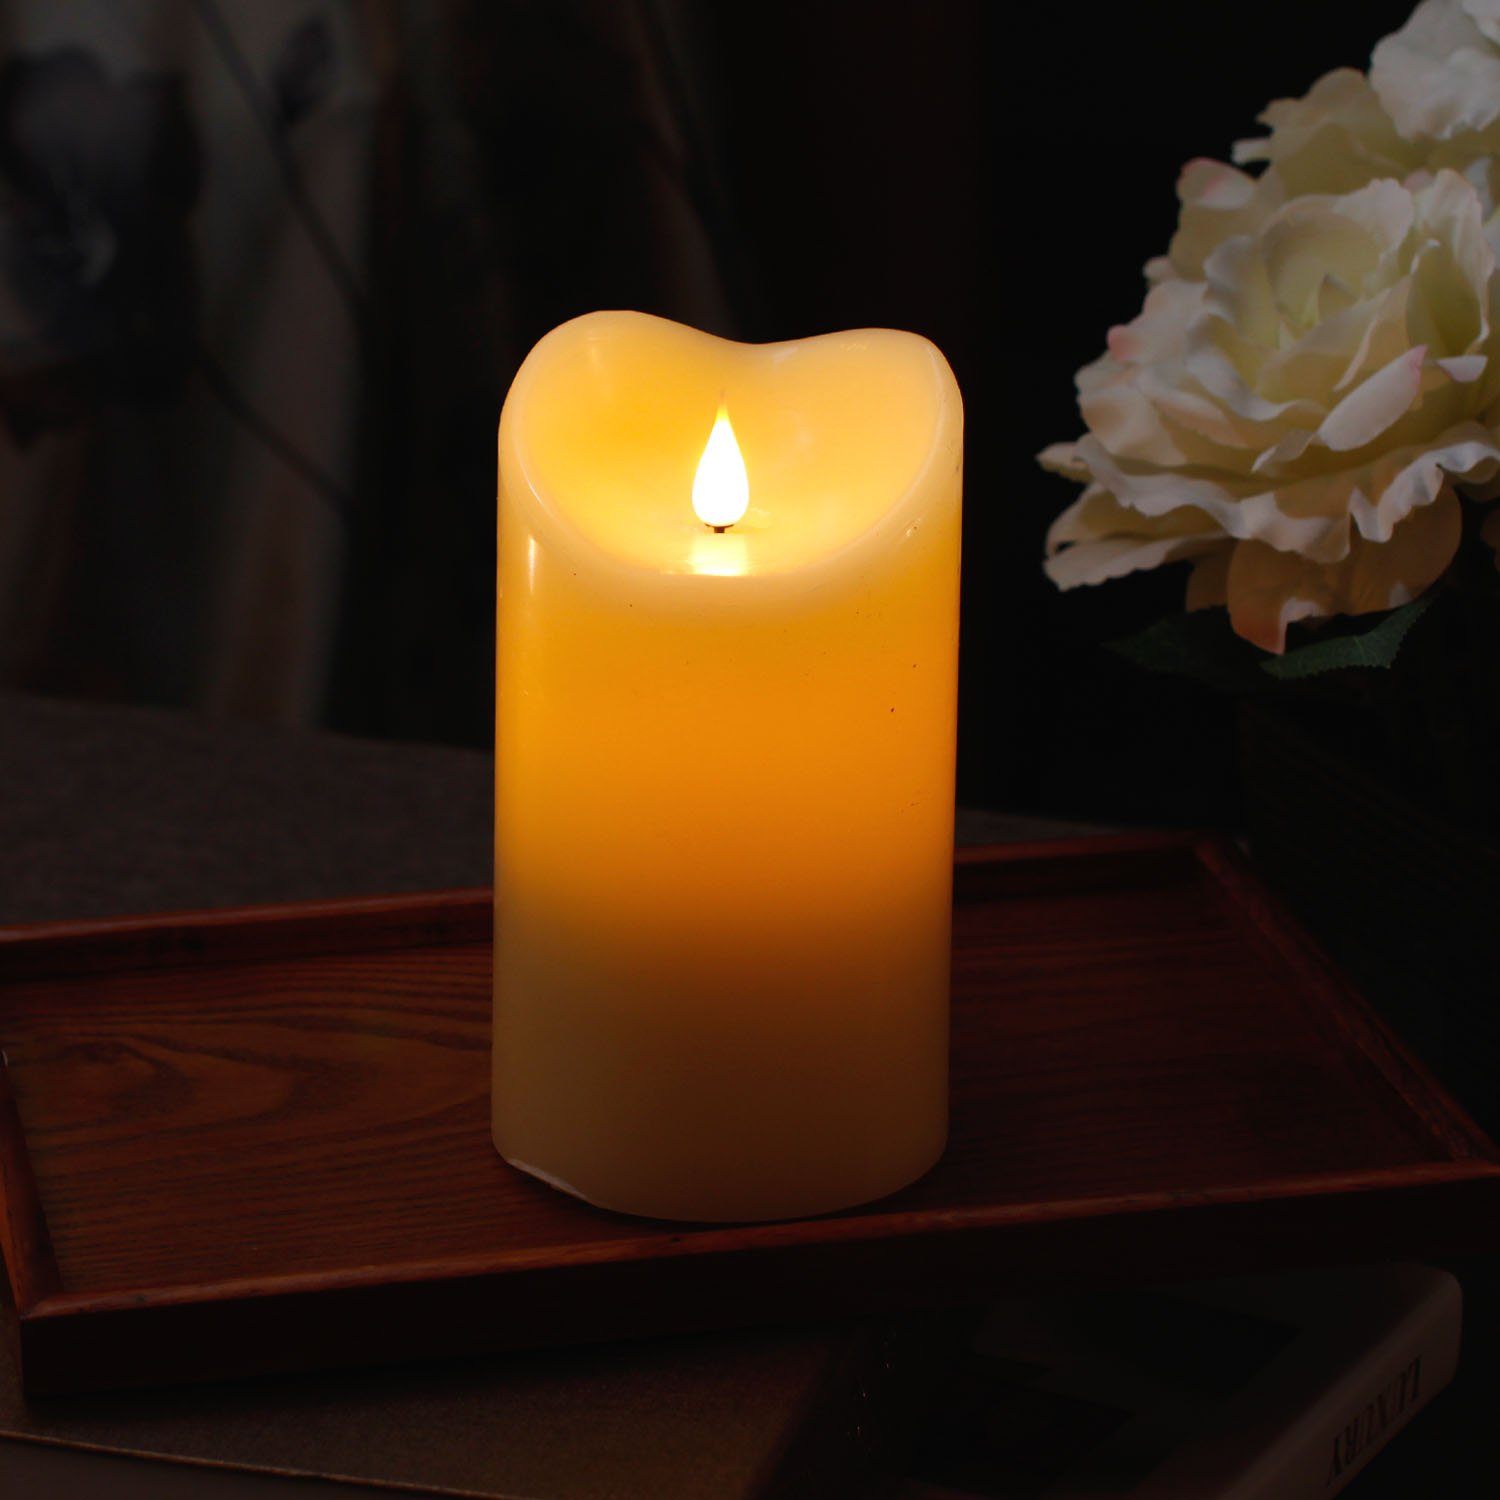 3D Flameless Led Candle with Timer, Moving Wick Pillar Candle for Home Decoration, 3.75x6.5 Inch, Ivory by GiveU